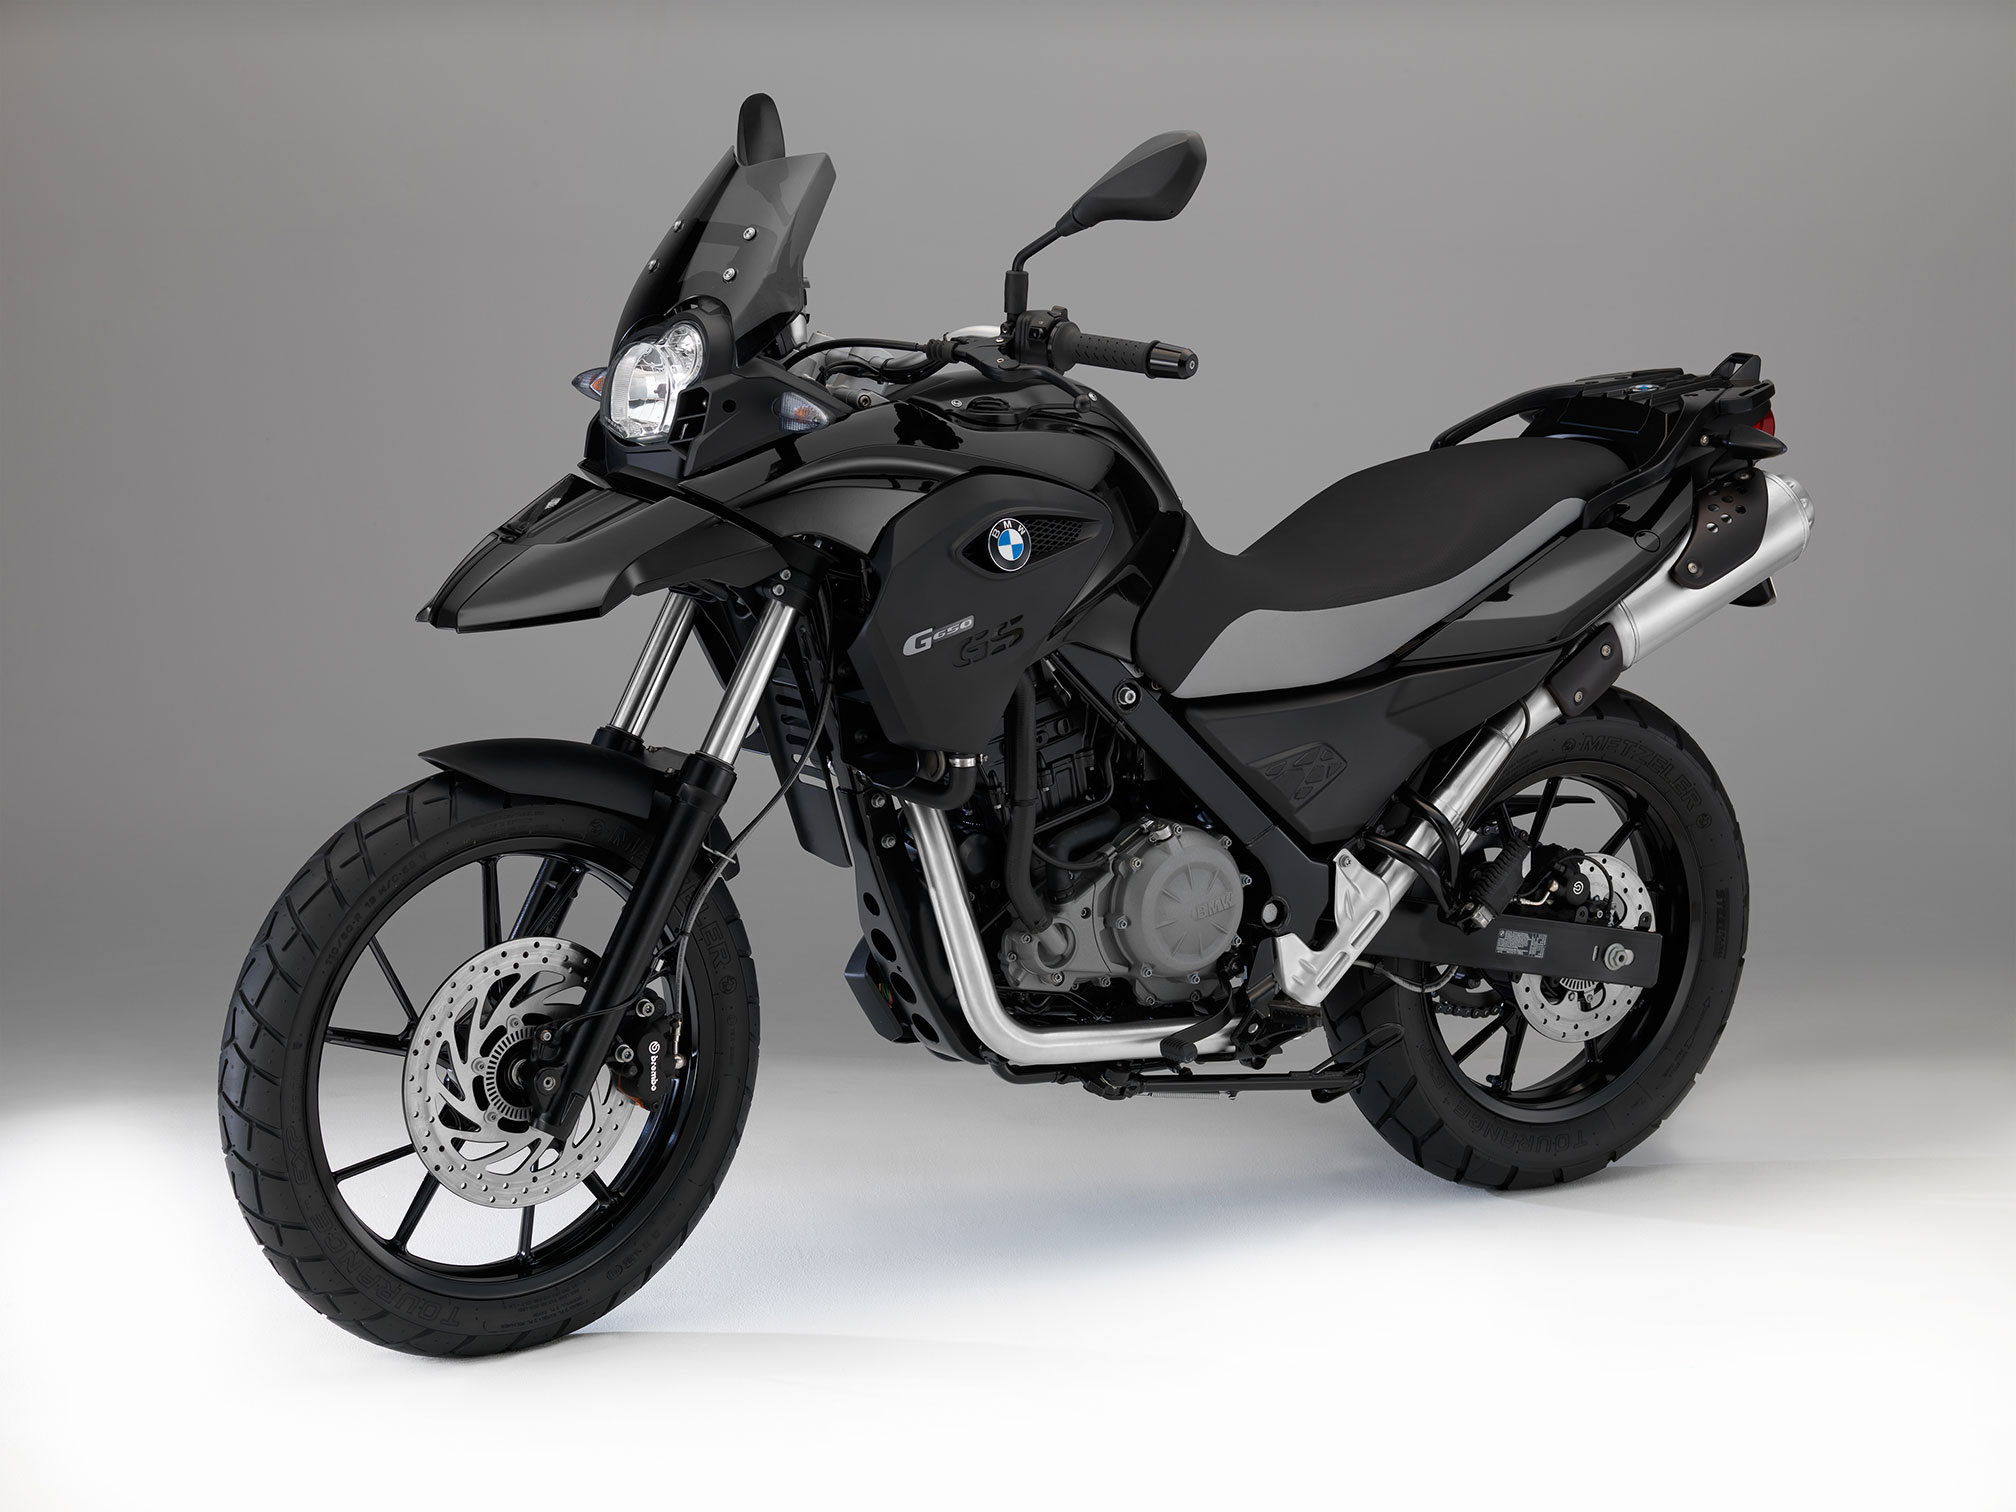 BMW G 650 GS 2010 images #8857